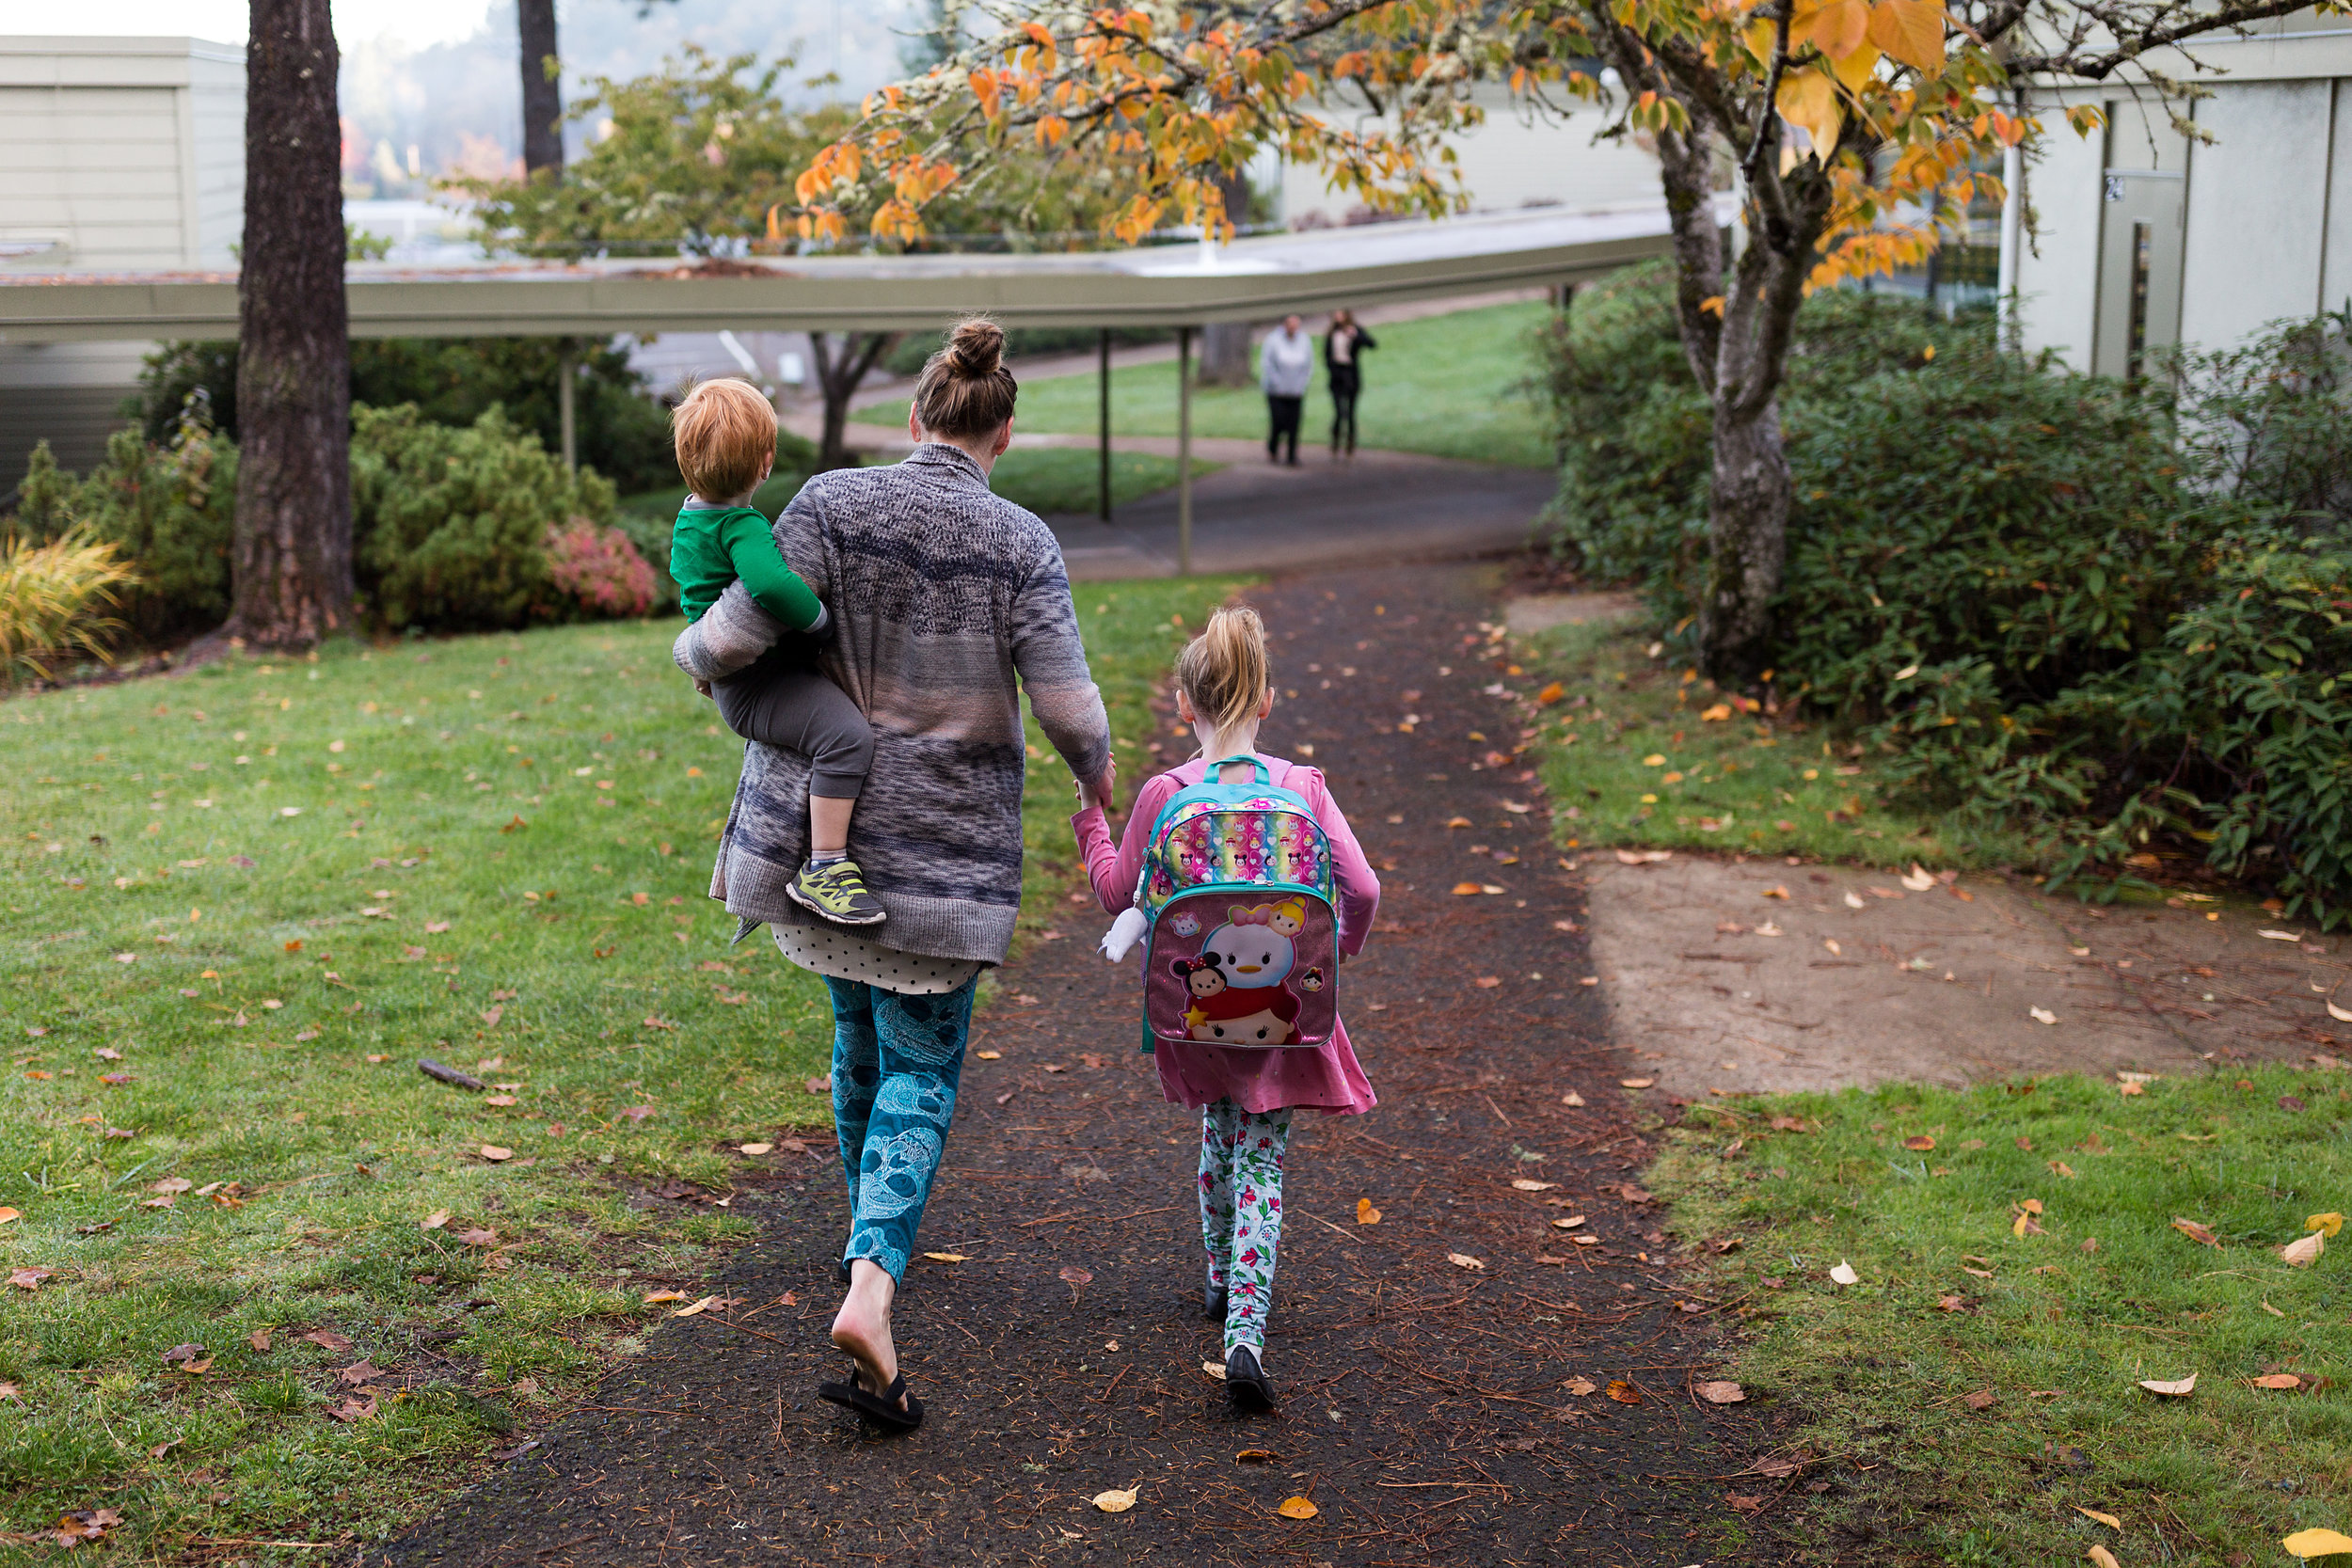 mom walks hand in hand with daughter to school